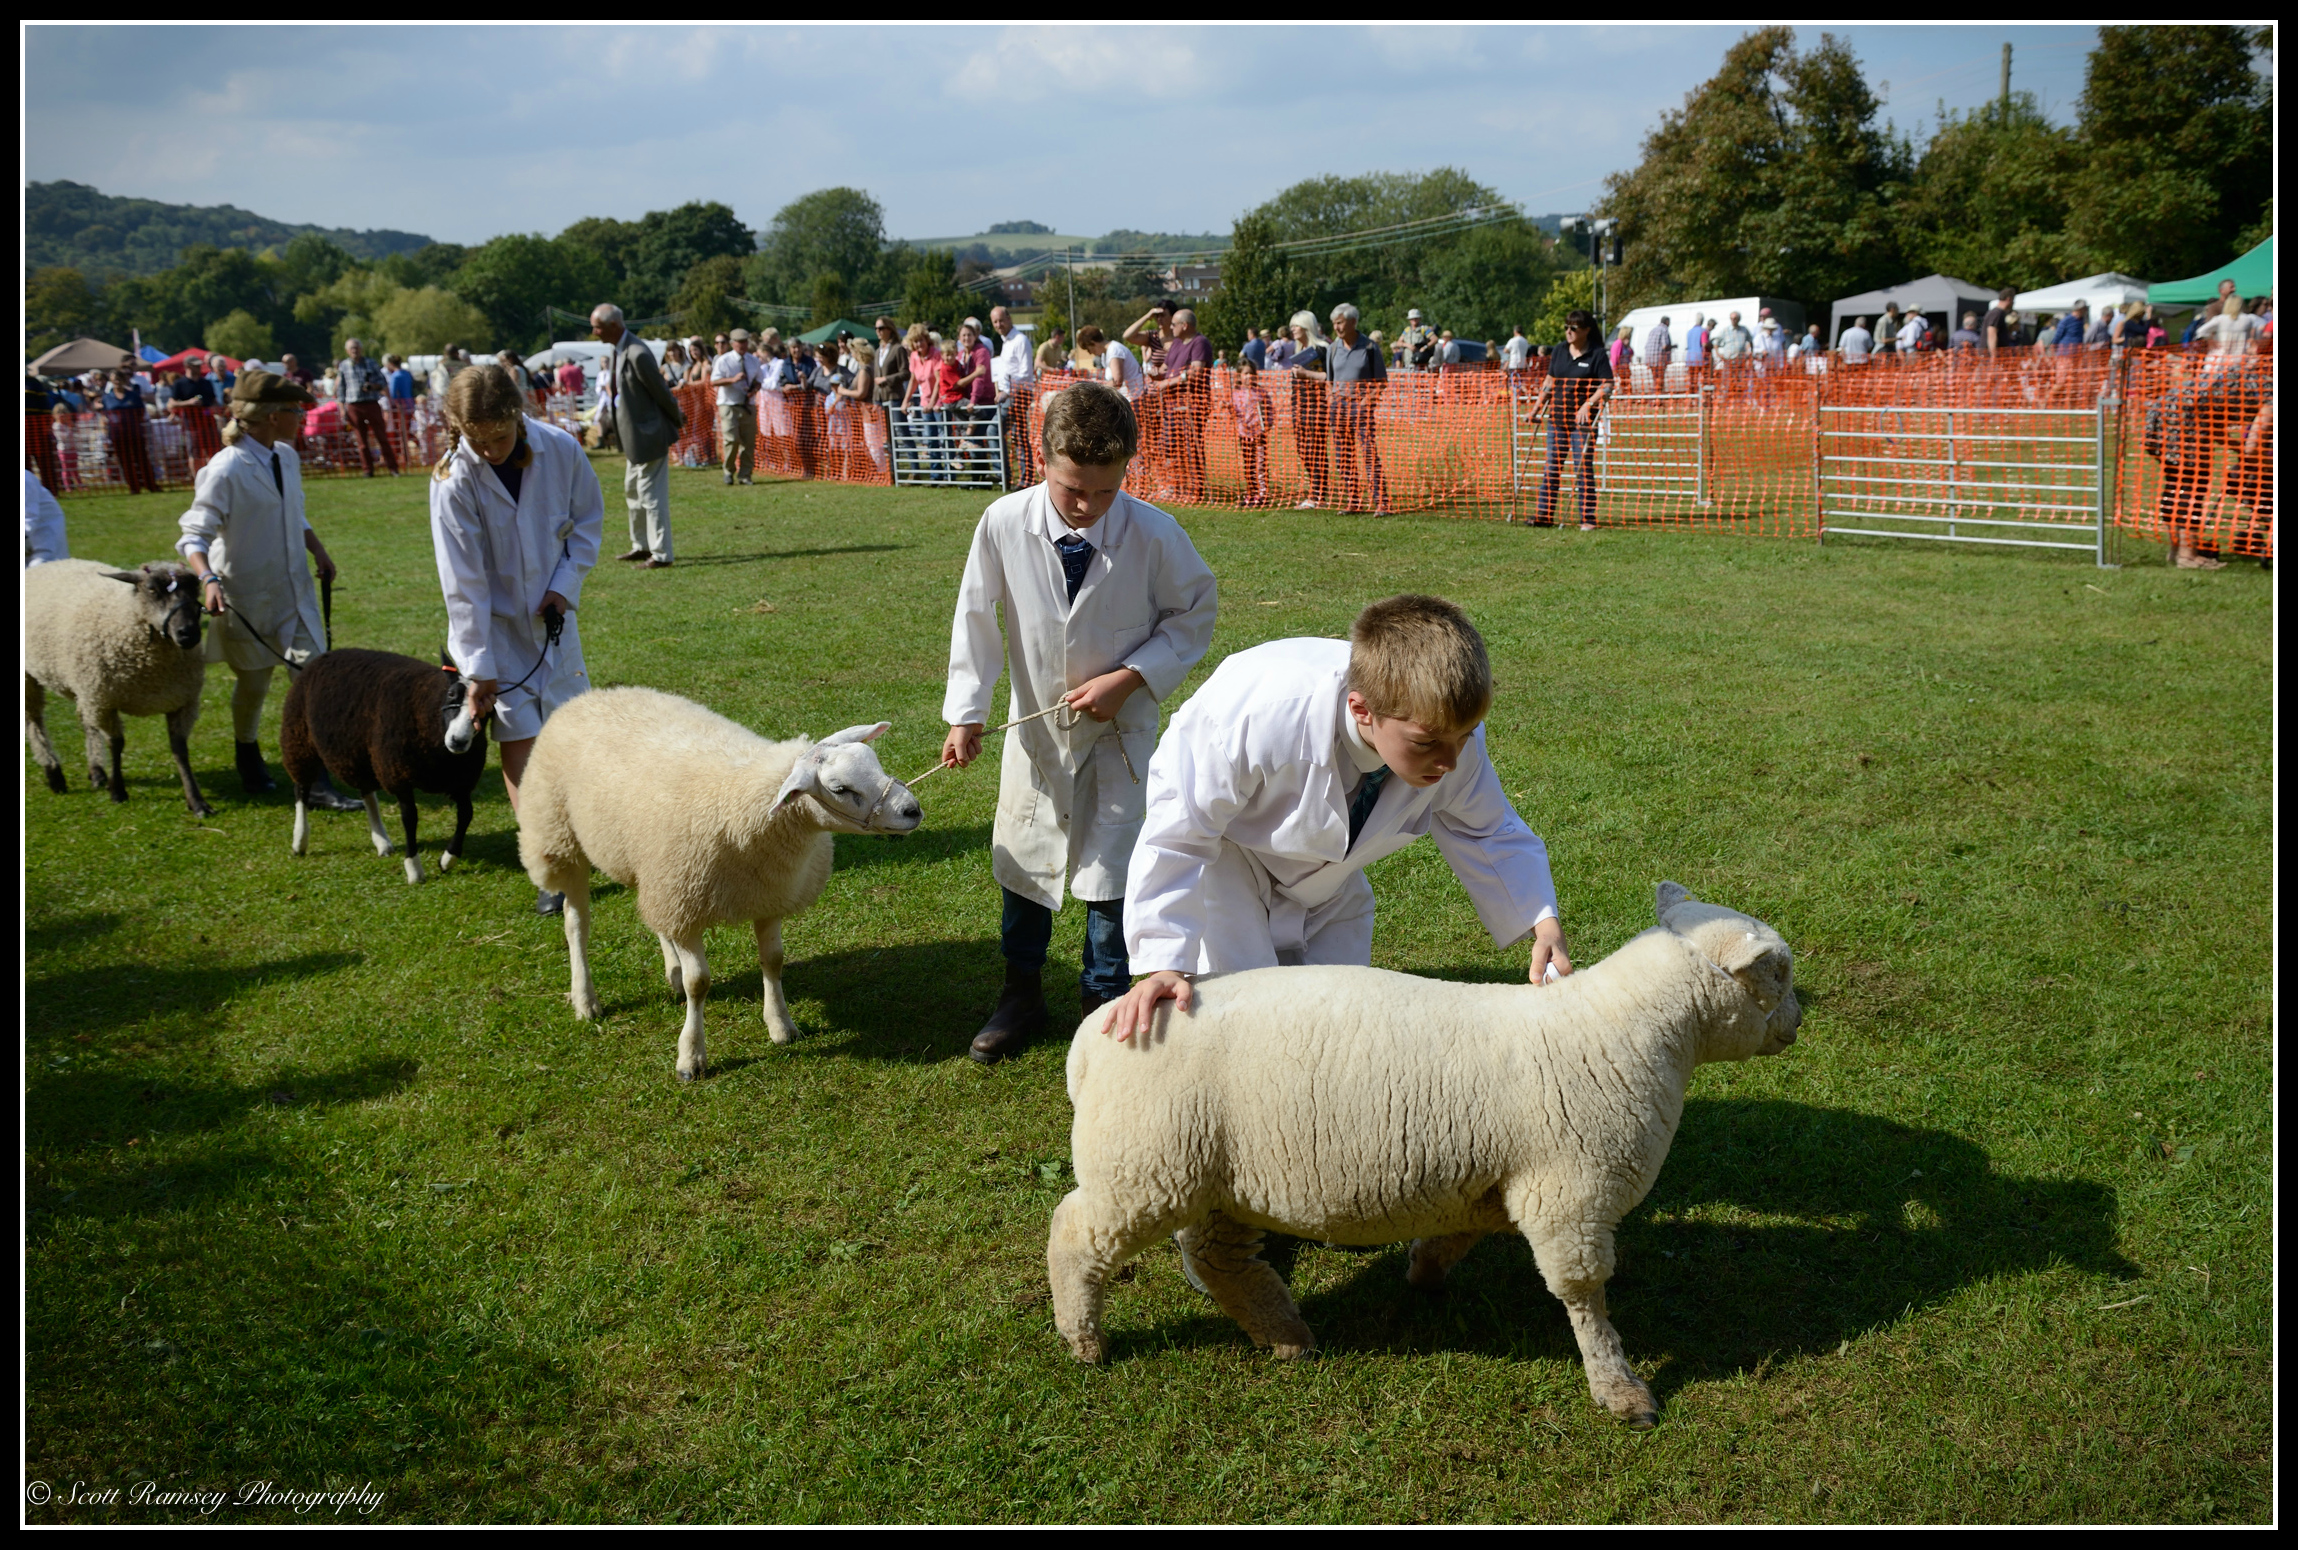 A sheep needs some encouragement to keep moving as children parade sheep around the main arena at the Findon Sheep Fair in West Sussex.